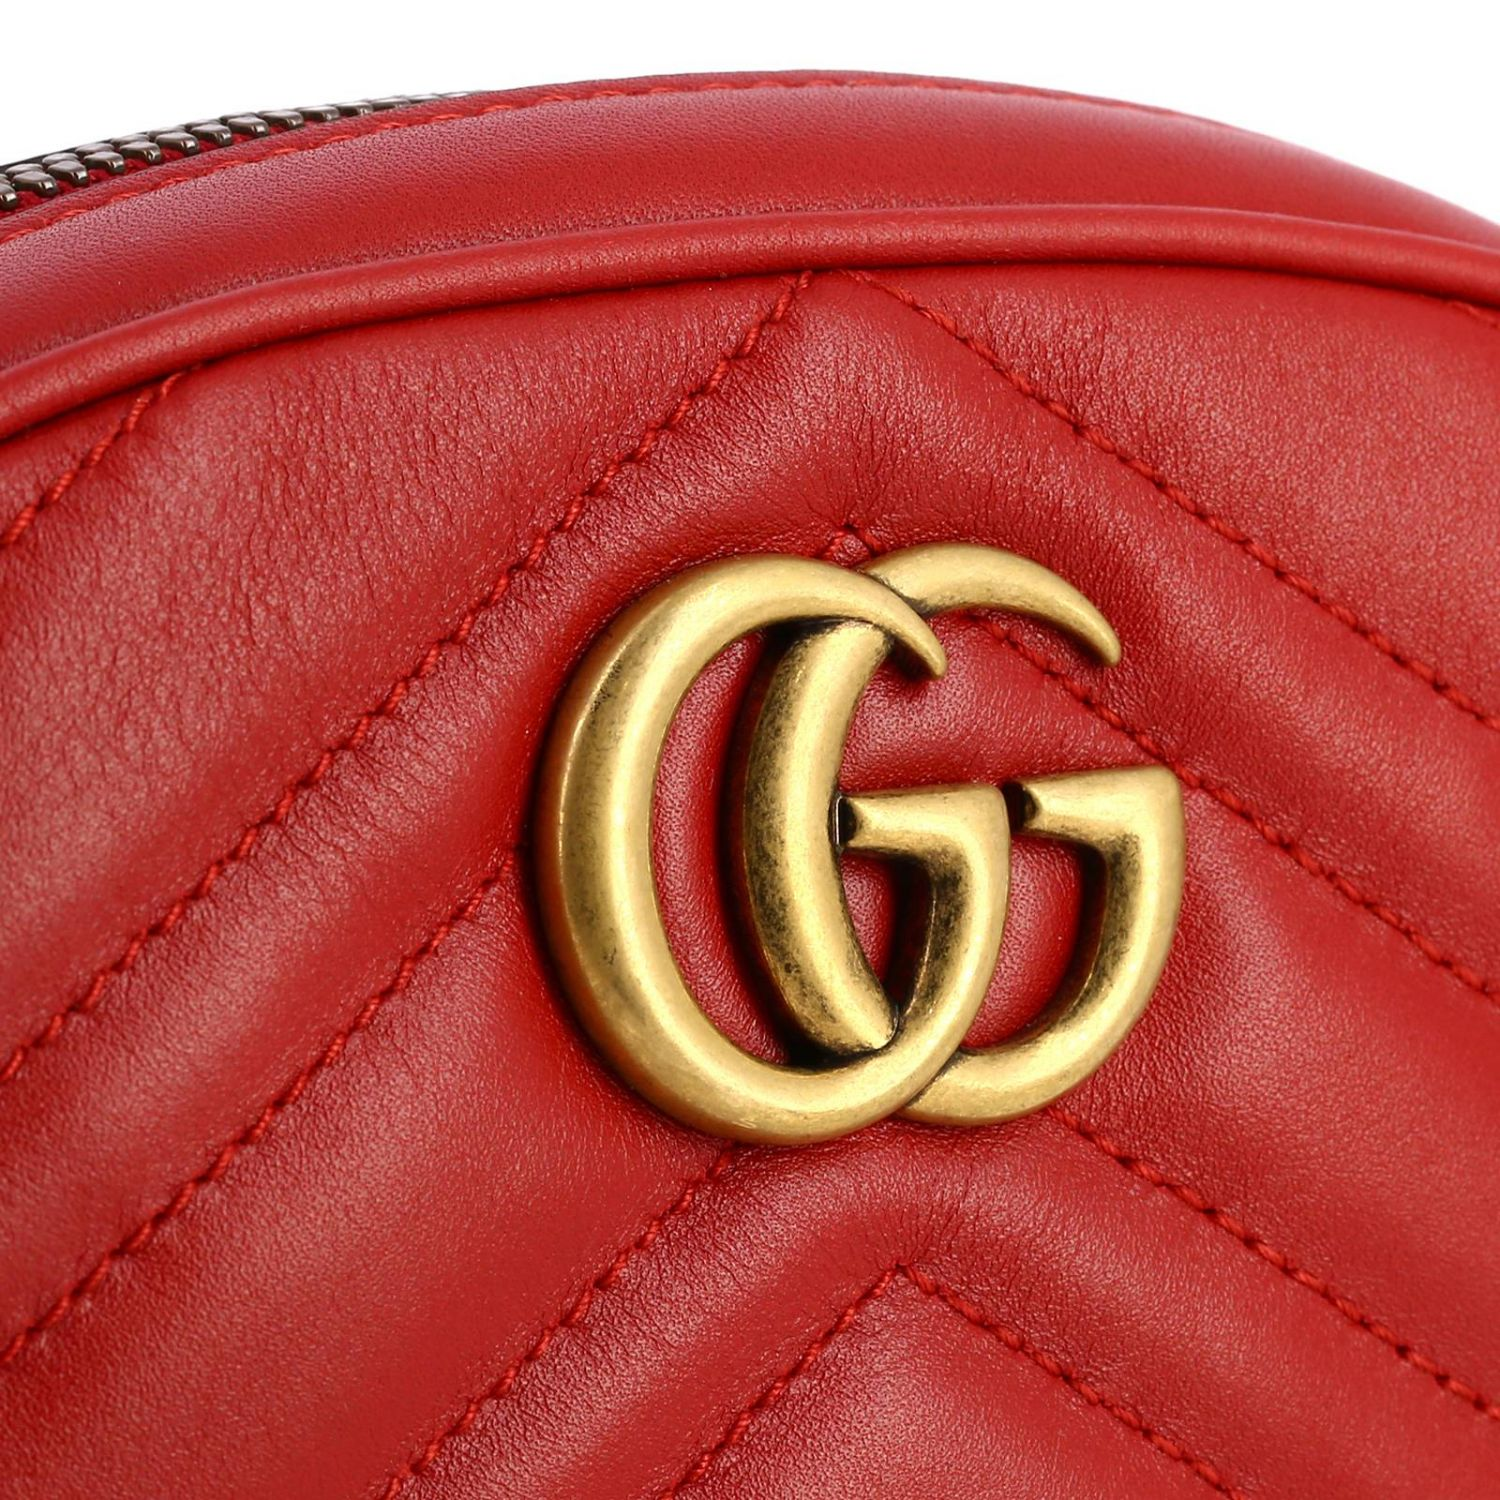 GG Marmont Gucci leather pouch in quilted chevron red 4